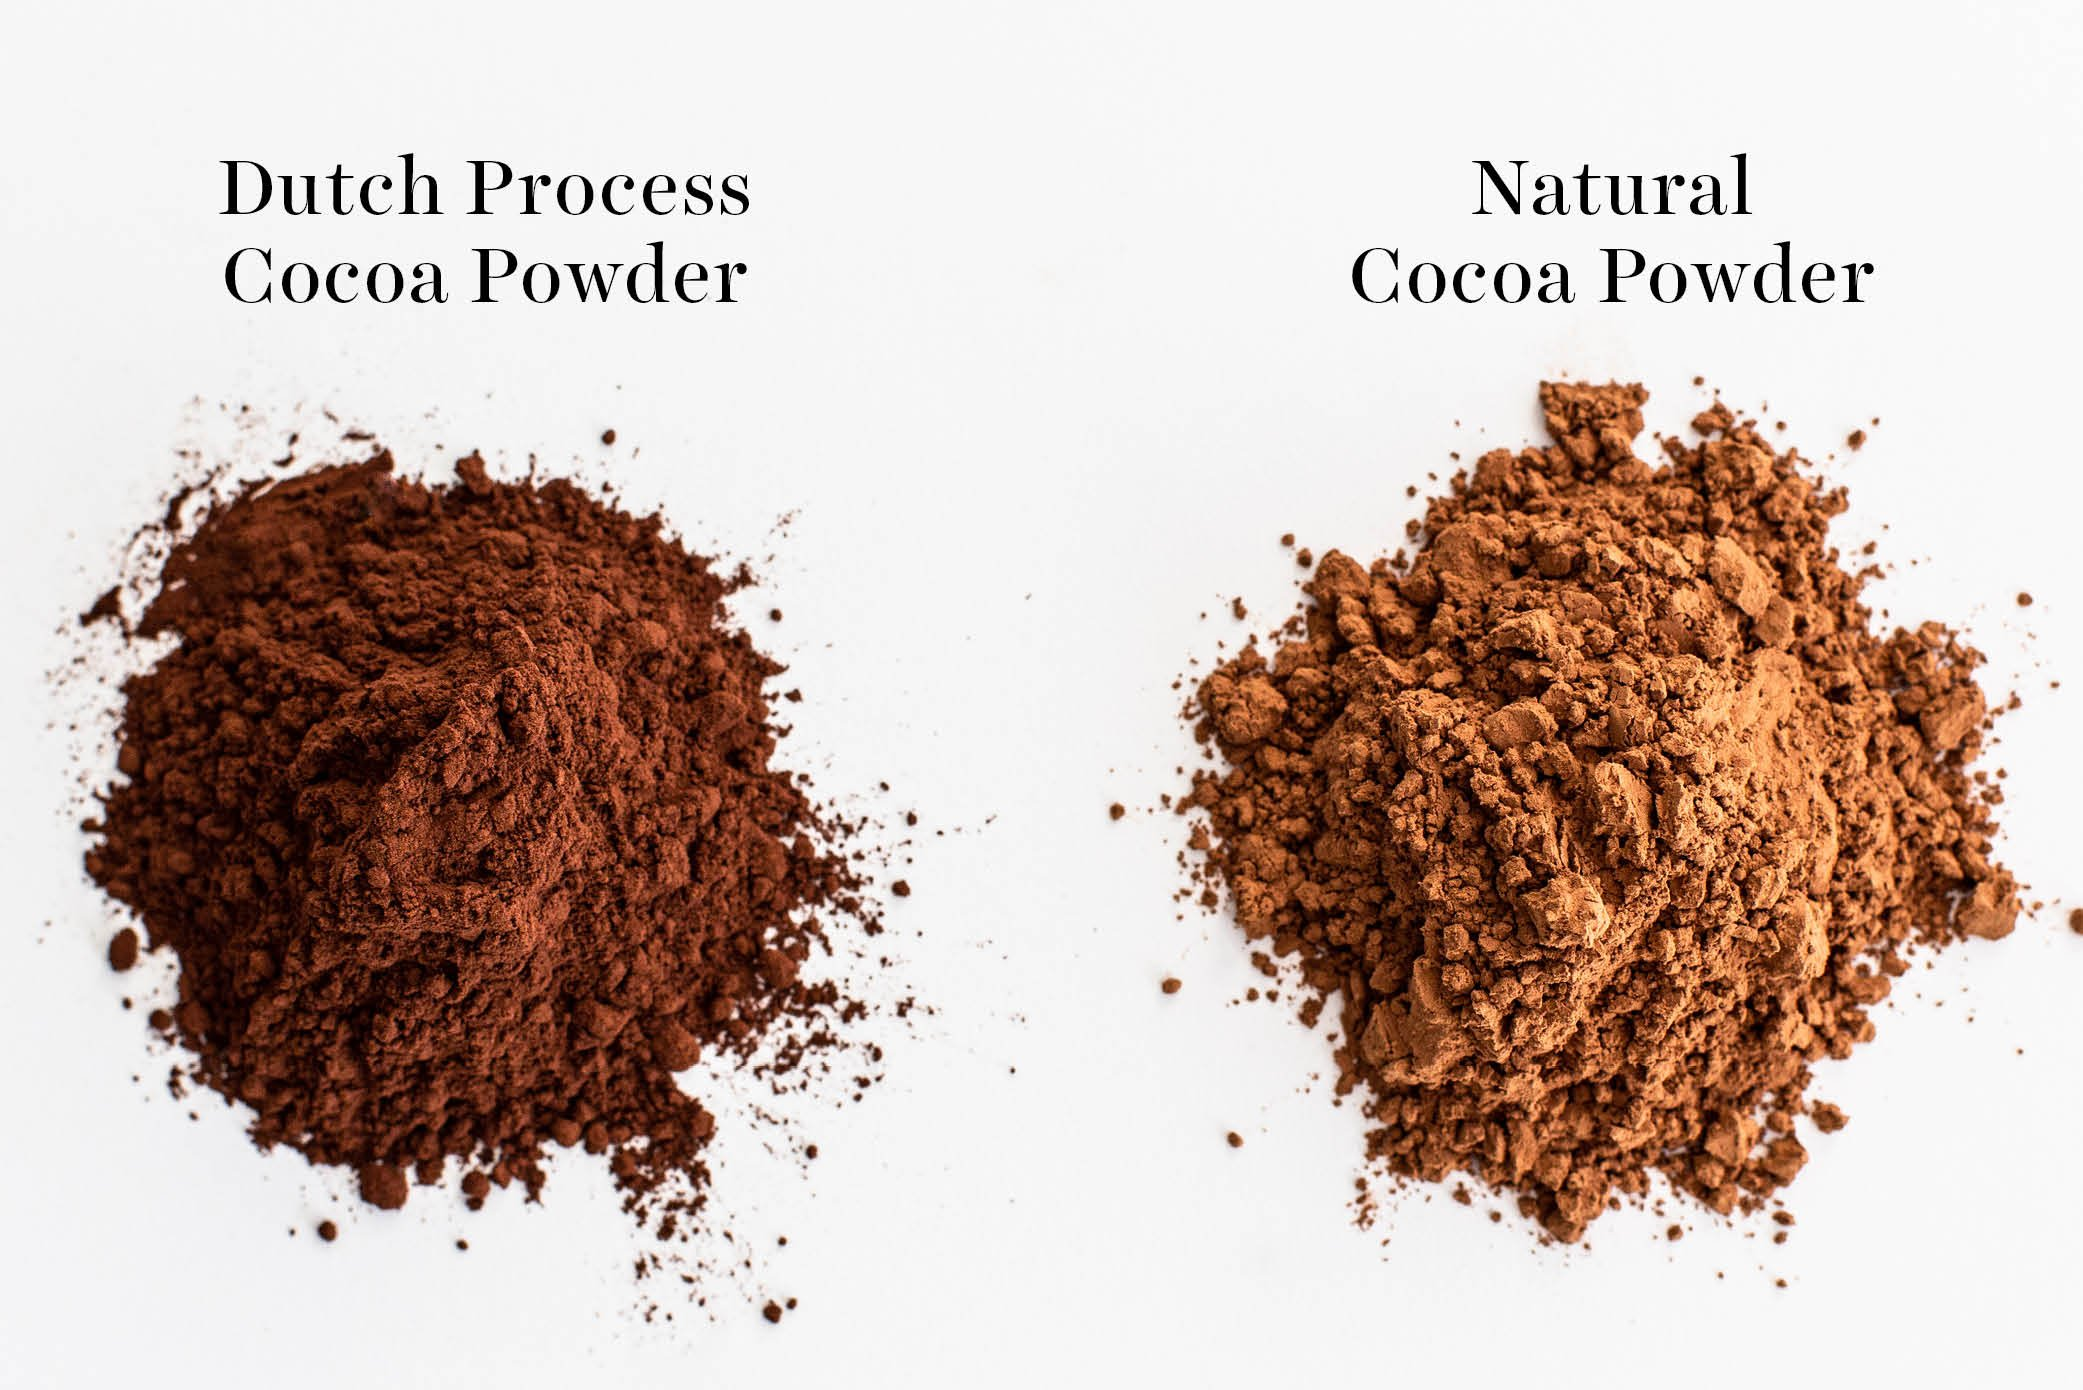 comparison of dutch process vs natural cocoa powder